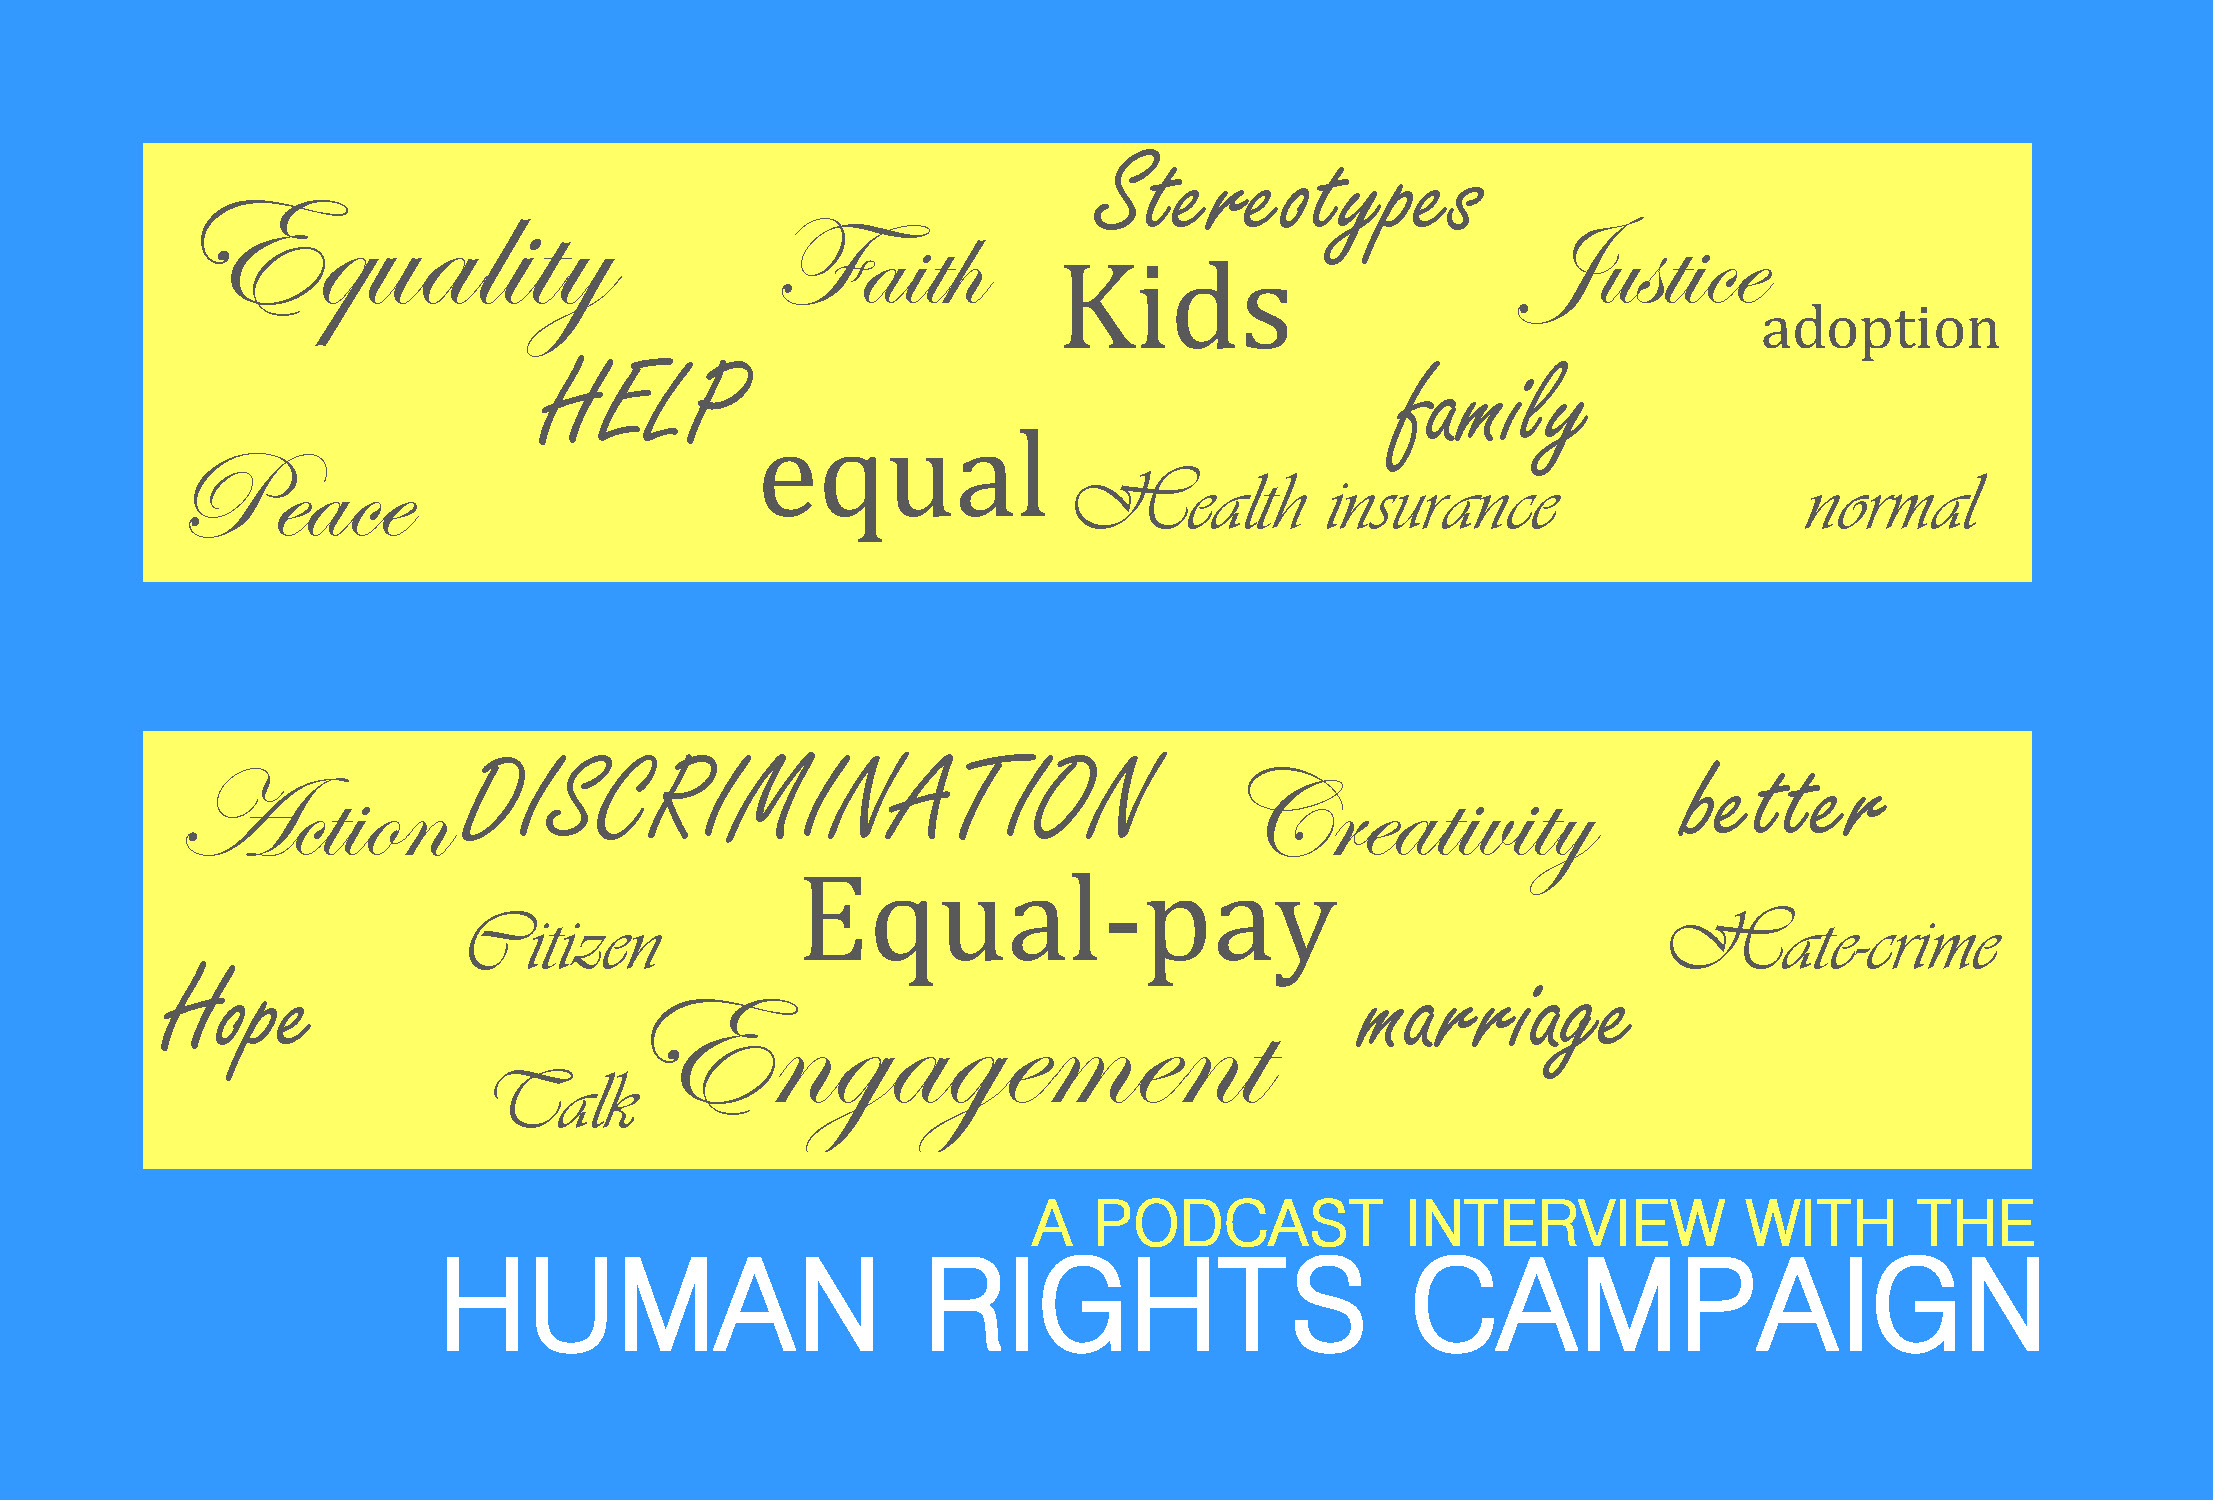 Human Rights Campaign counseling GLBT @hrc